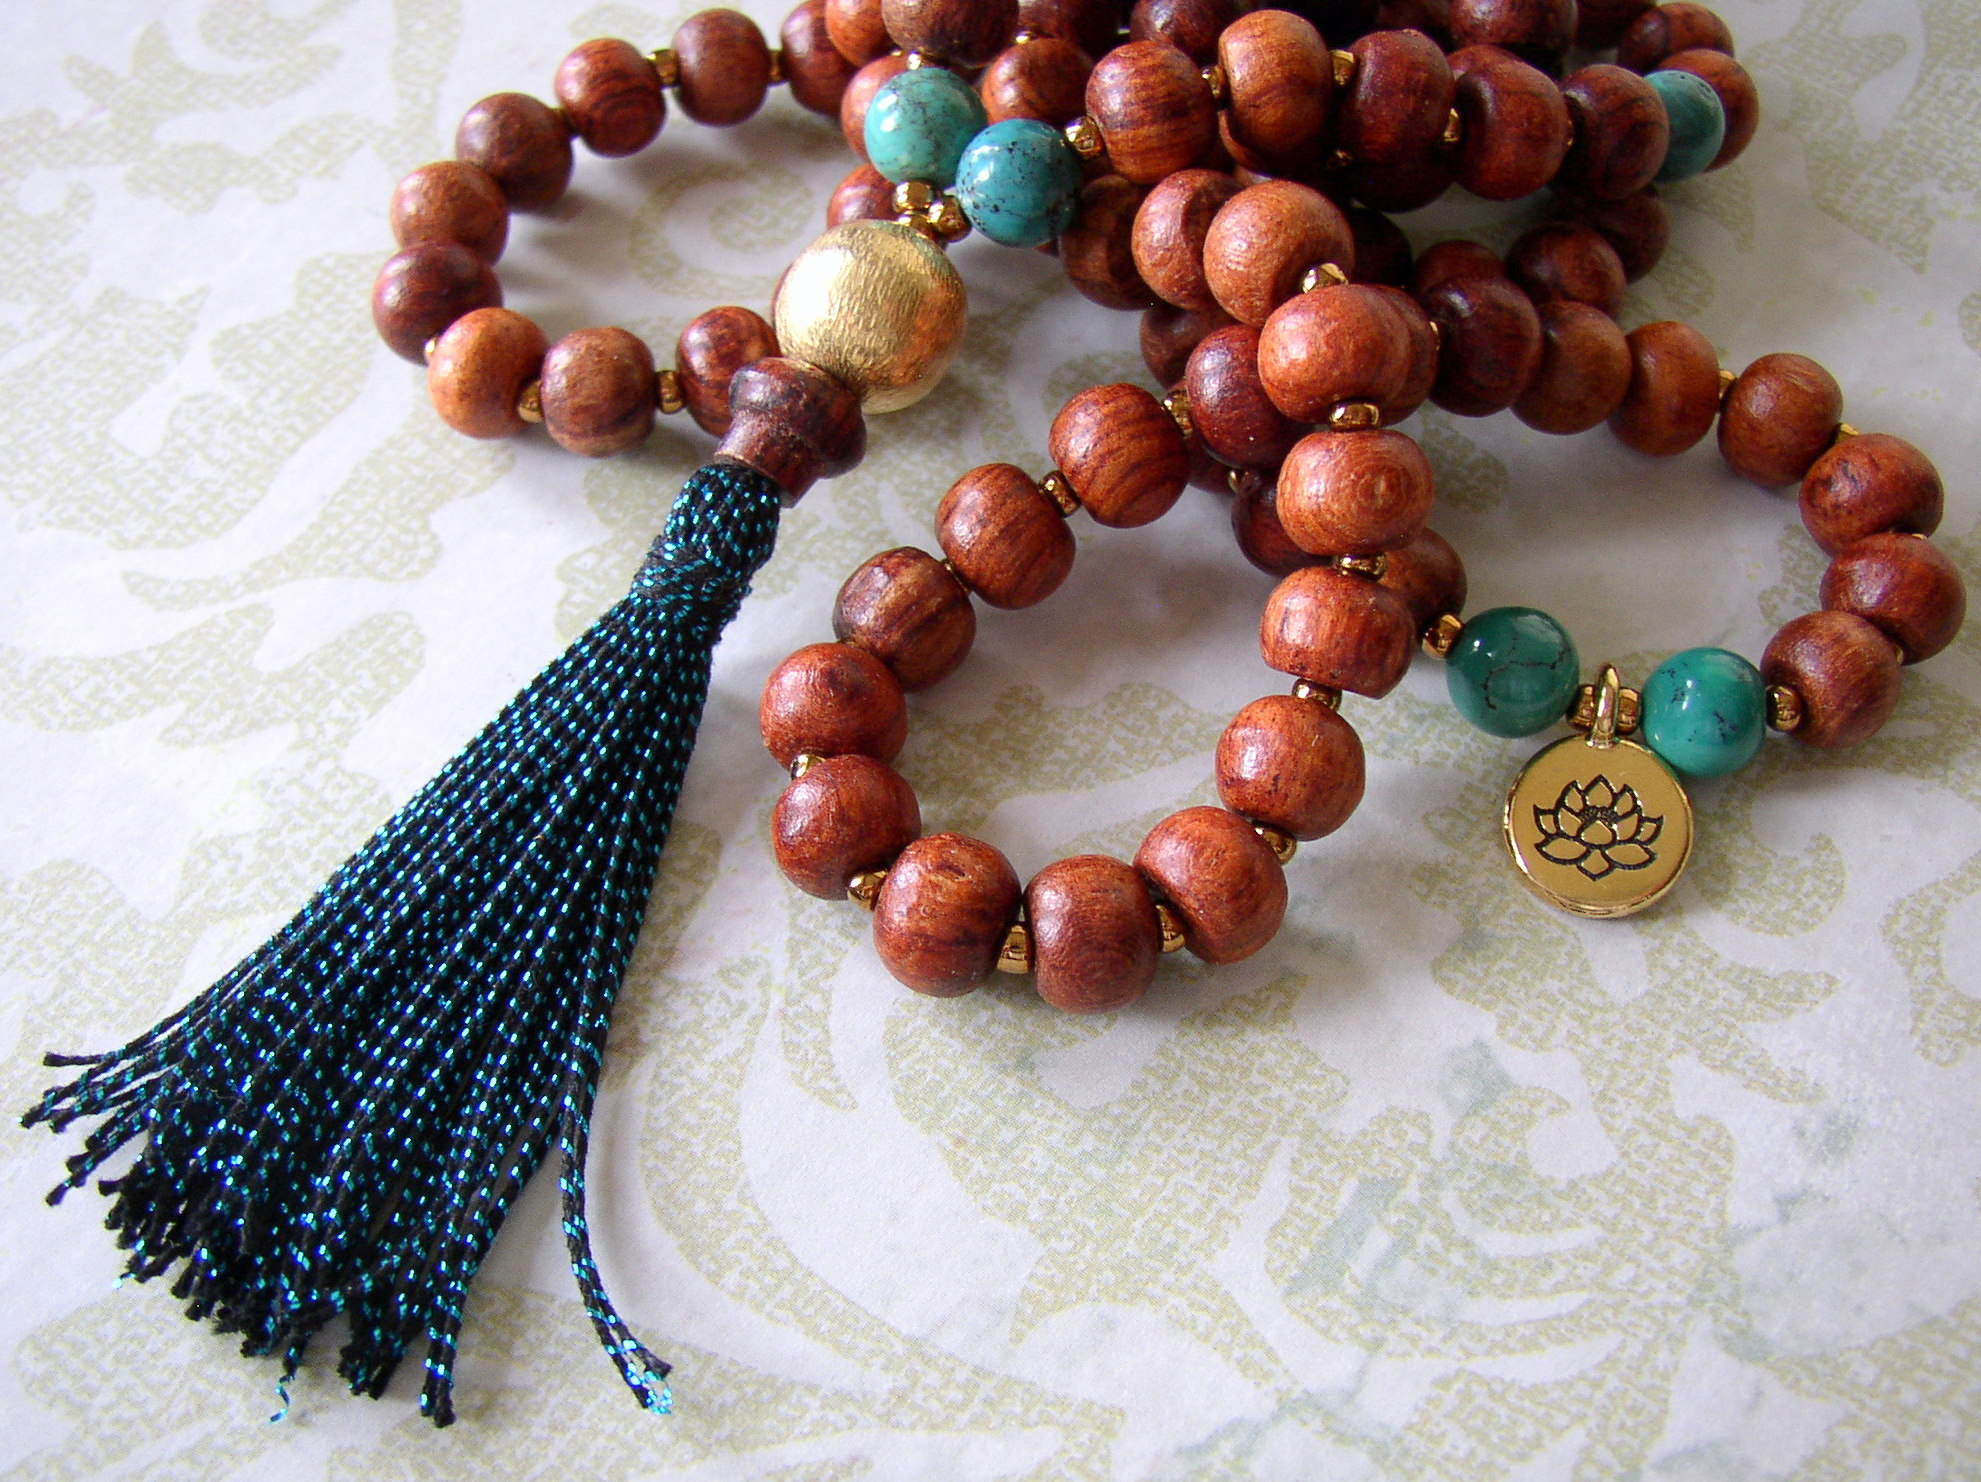 A finished Mala necklace can be used for prayer, meditation, and worn.